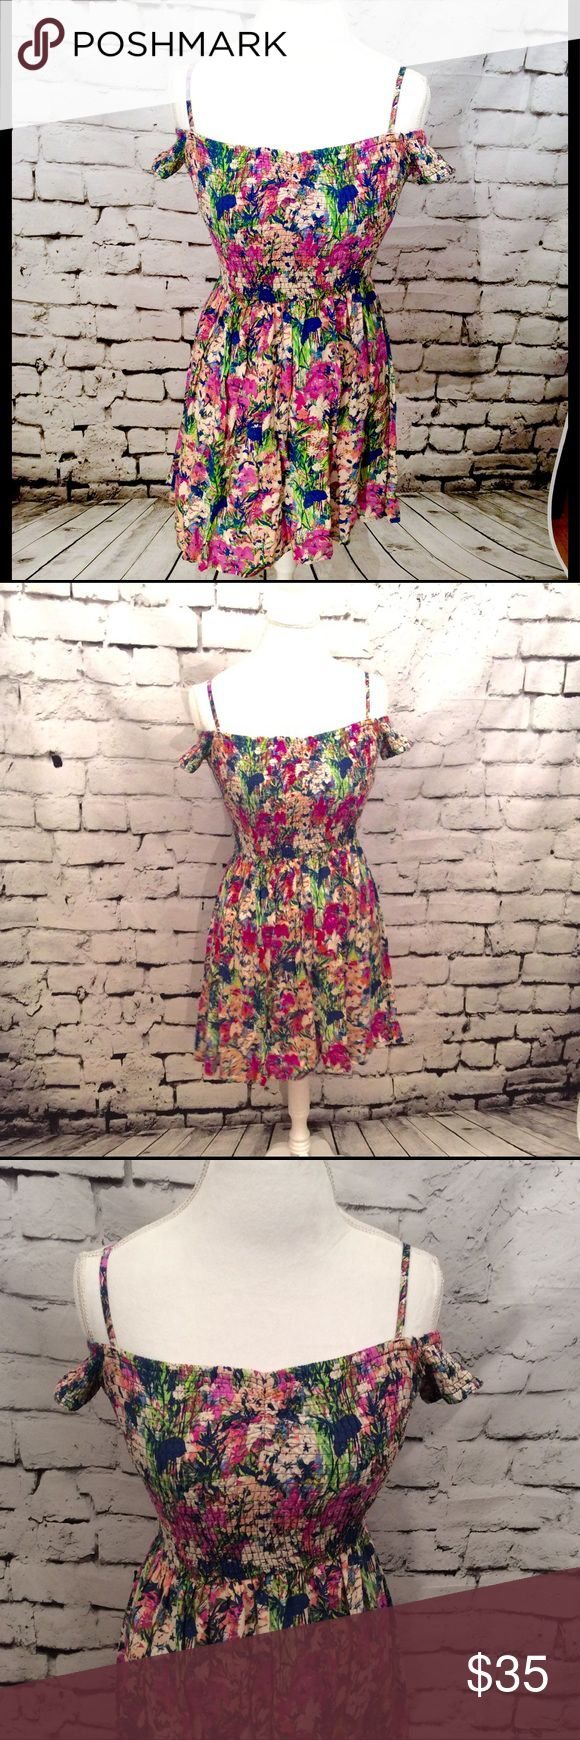 """Band of Gypsies Floral Print Off Shoulder Dress Beautiful bright colored floral print dress by Band of Gypsies. Print is pink, green, blue, and cream colors. Features stretchy smocked top and flared skirt. Features adjustable straps and short sleeves that can be worn off the shoulder. 100% rayon. Bust measures approx 27"""" unstretched, waist measures approx 26"""" unstretched and length is approx 28"""". Lots of stretch to it! Band of Gypsies Dresses"""